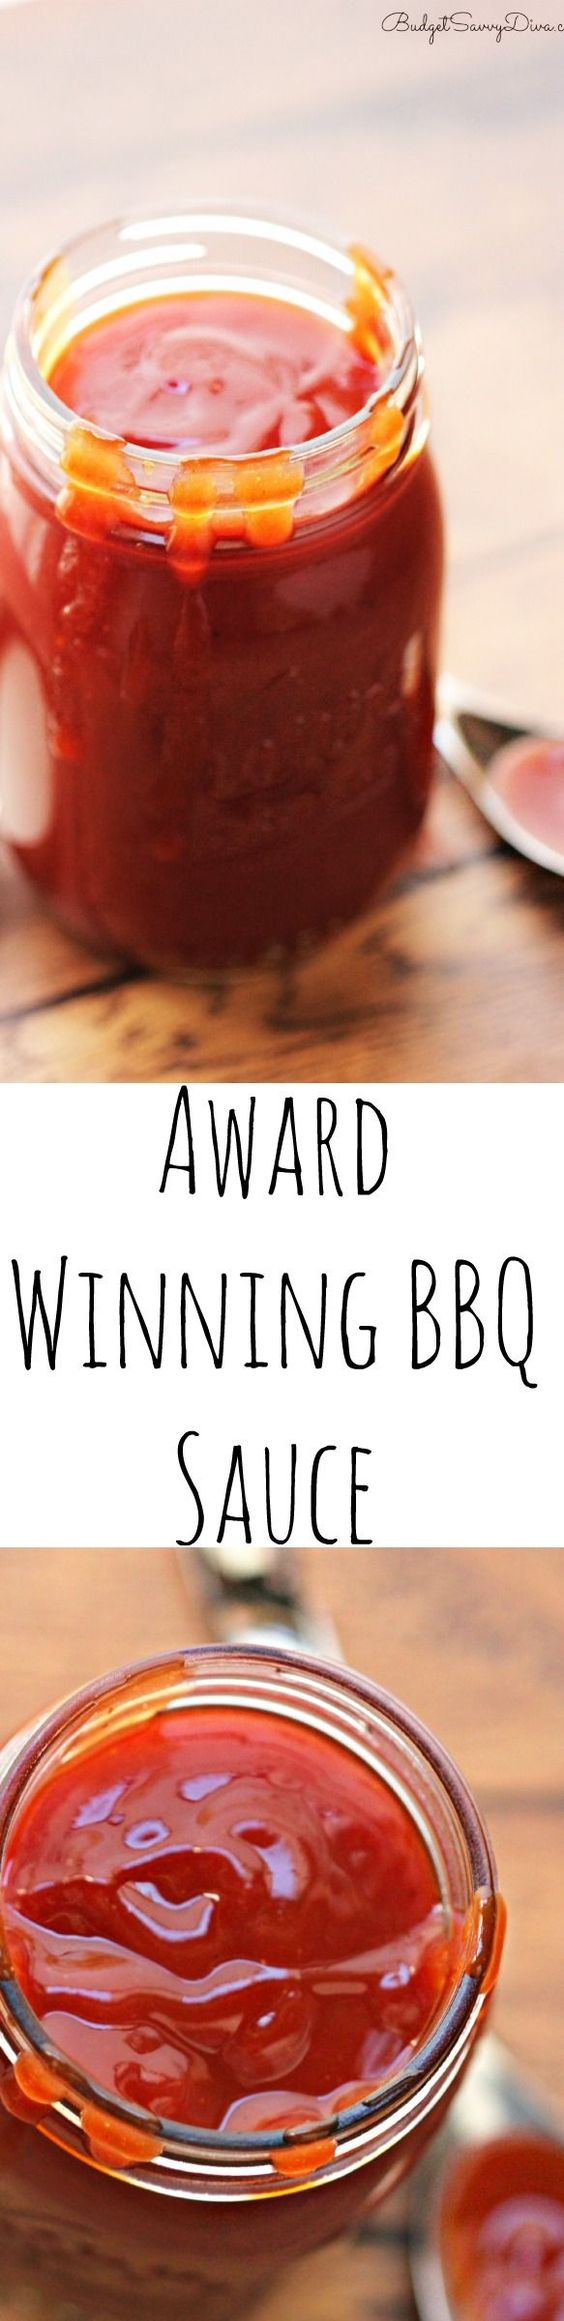 Award Winning BBQ Sauce Recipe - Homemade BBQ Sauce Recipe that is not only easy but quick. It is perfect BBQ Sauce for pulled pork and ribs. I have made this recipe for years.